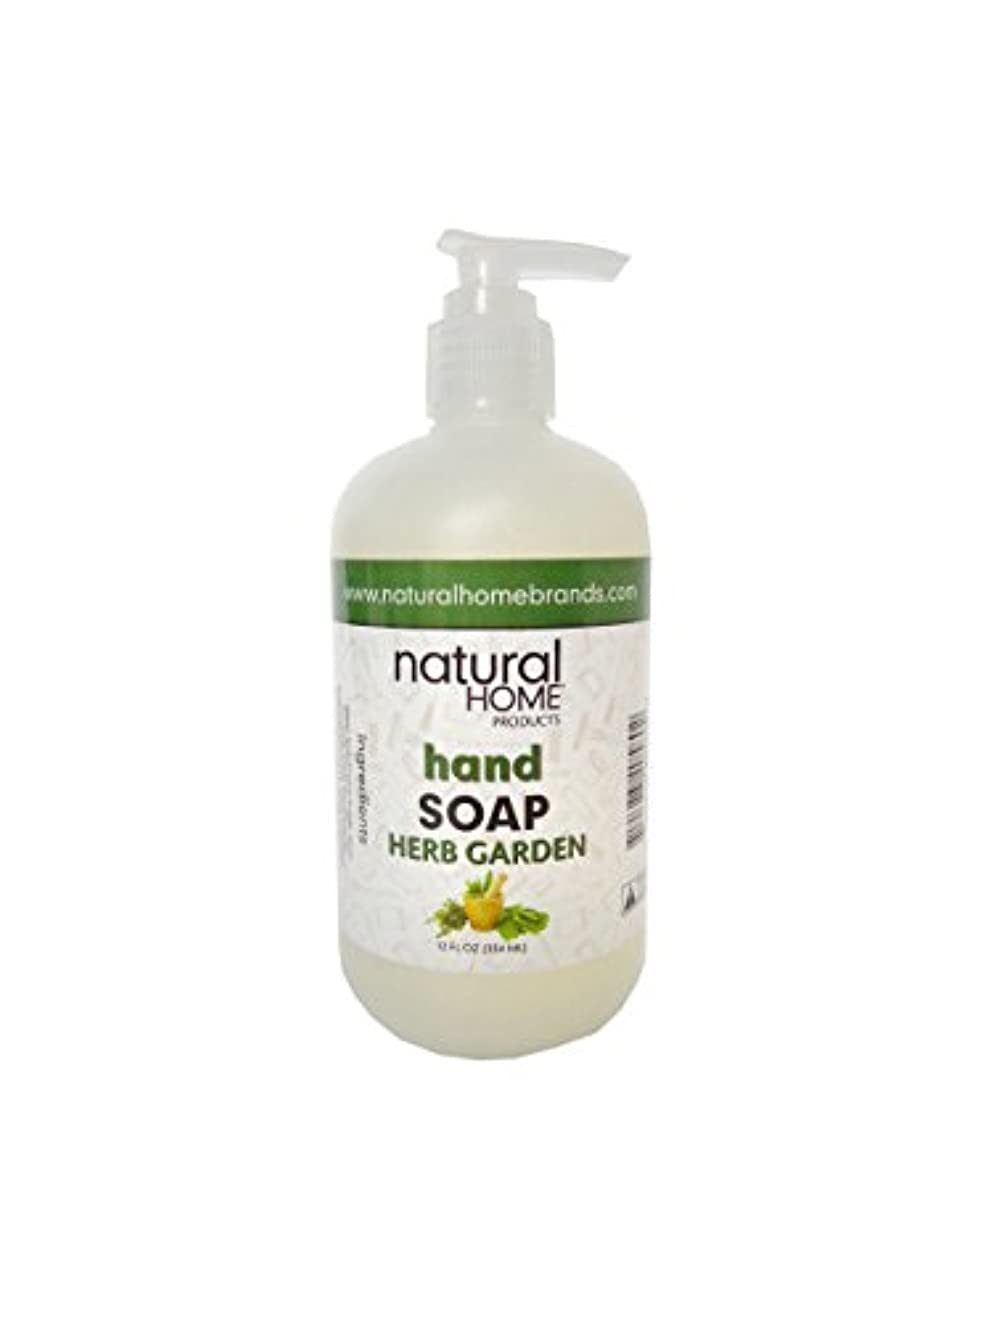 無駄説明する暗唱するNatural Home Herb Garden Hand Soap, 350ml, Green